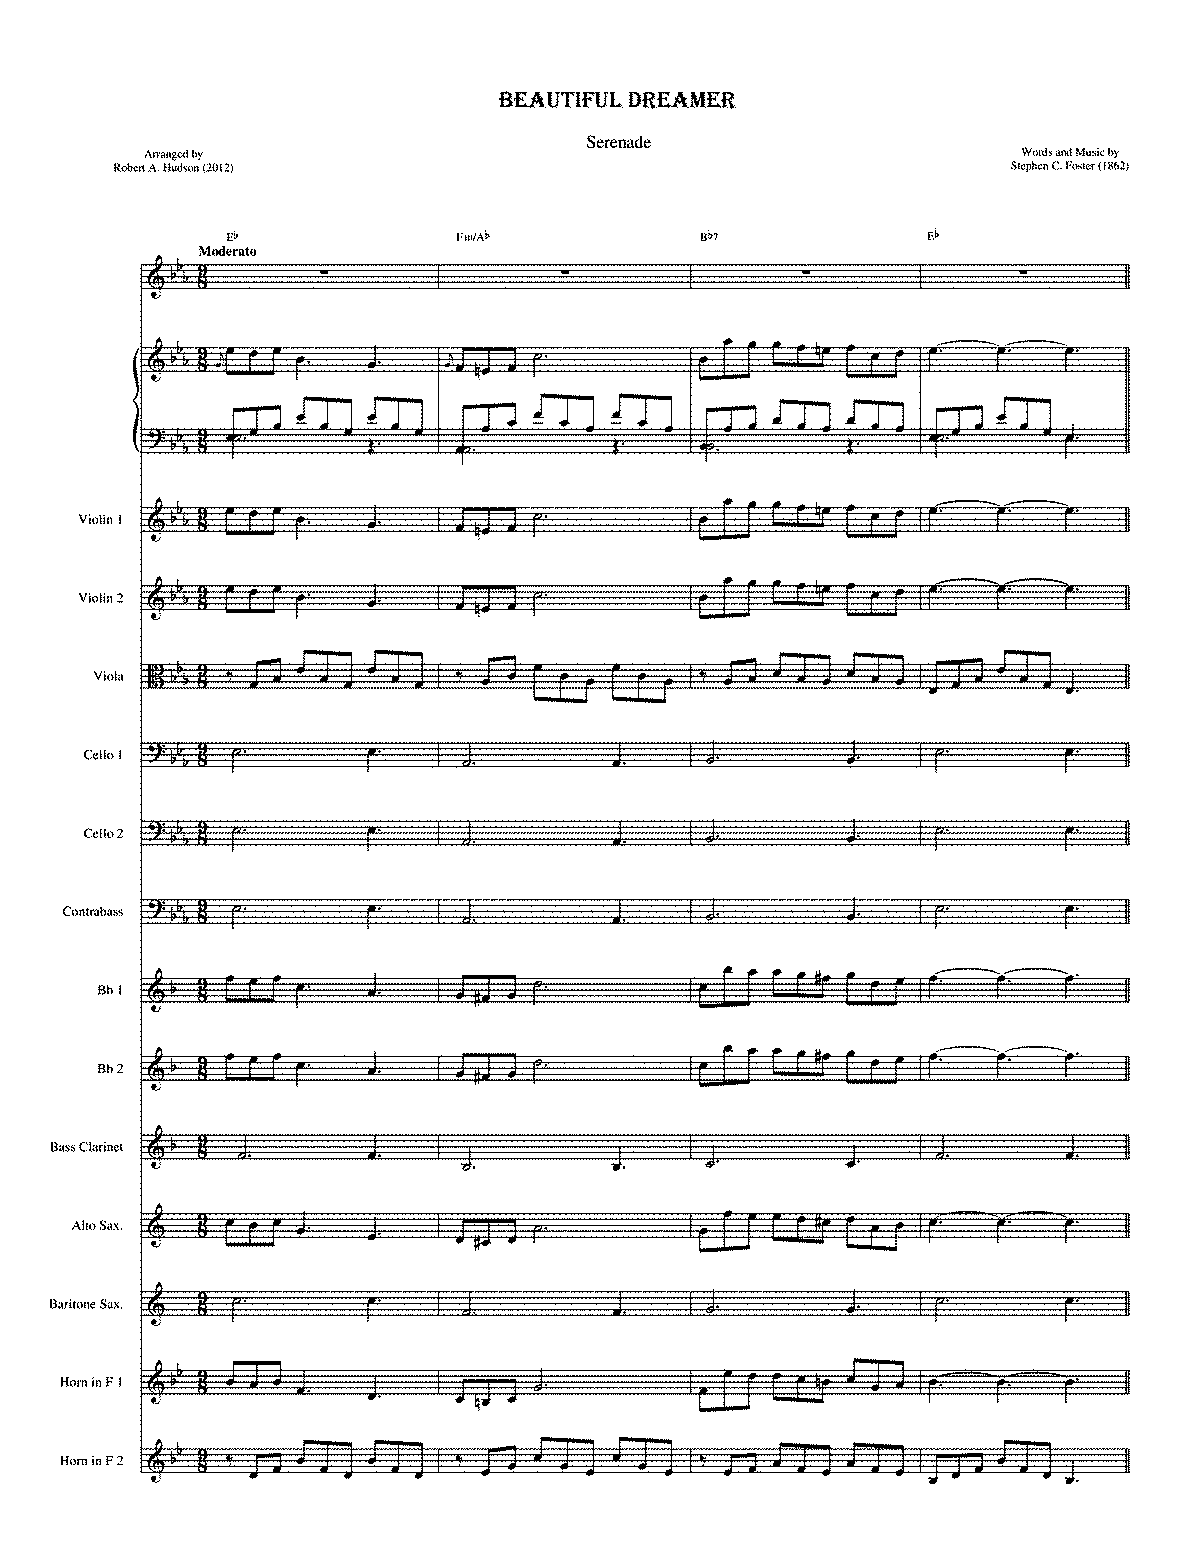 PMLP52333-Beautiful Dreamer Conductors Score.pdf